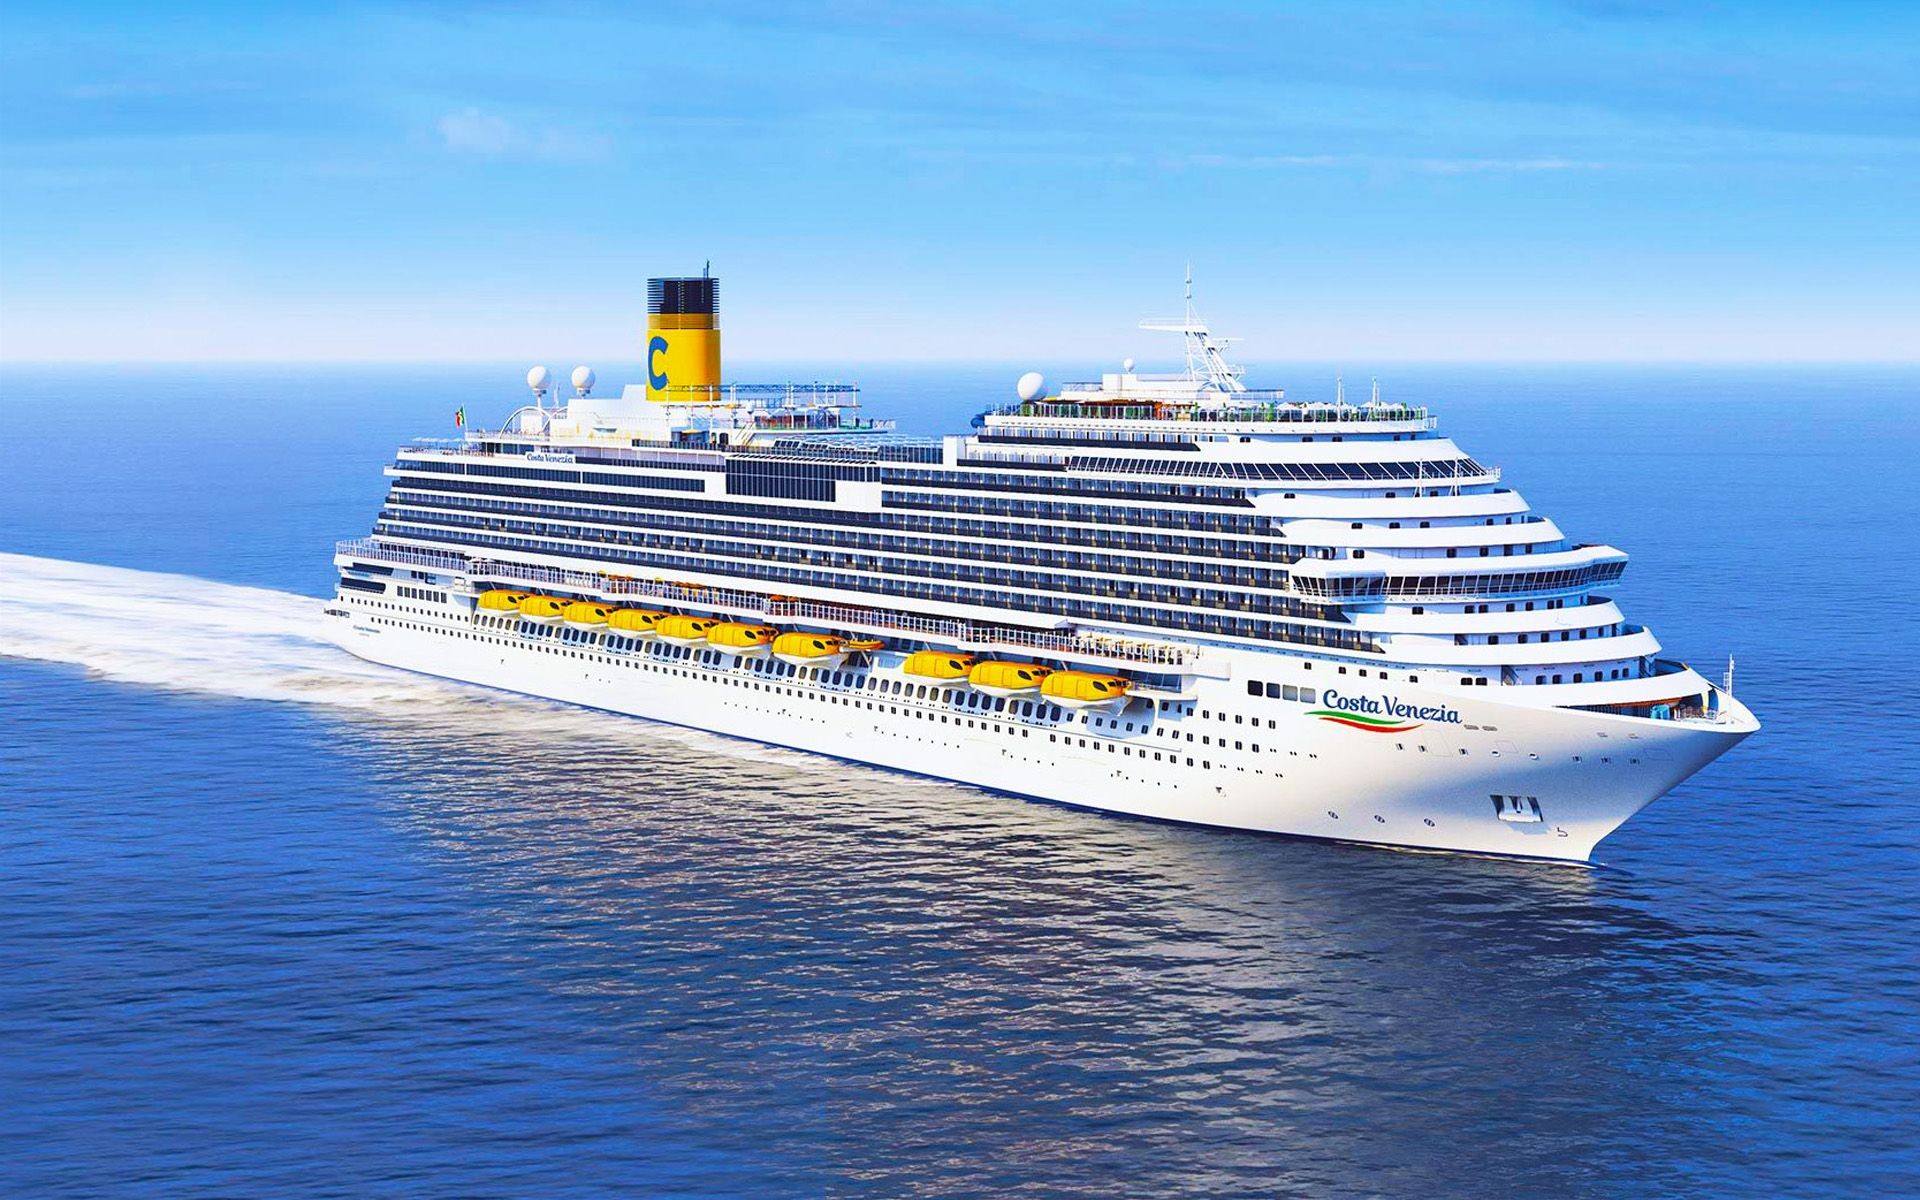 Measuring some 323 metres long, the Costa Venezia was tailored specifically for the Asian market. Photo: Costa Cruises